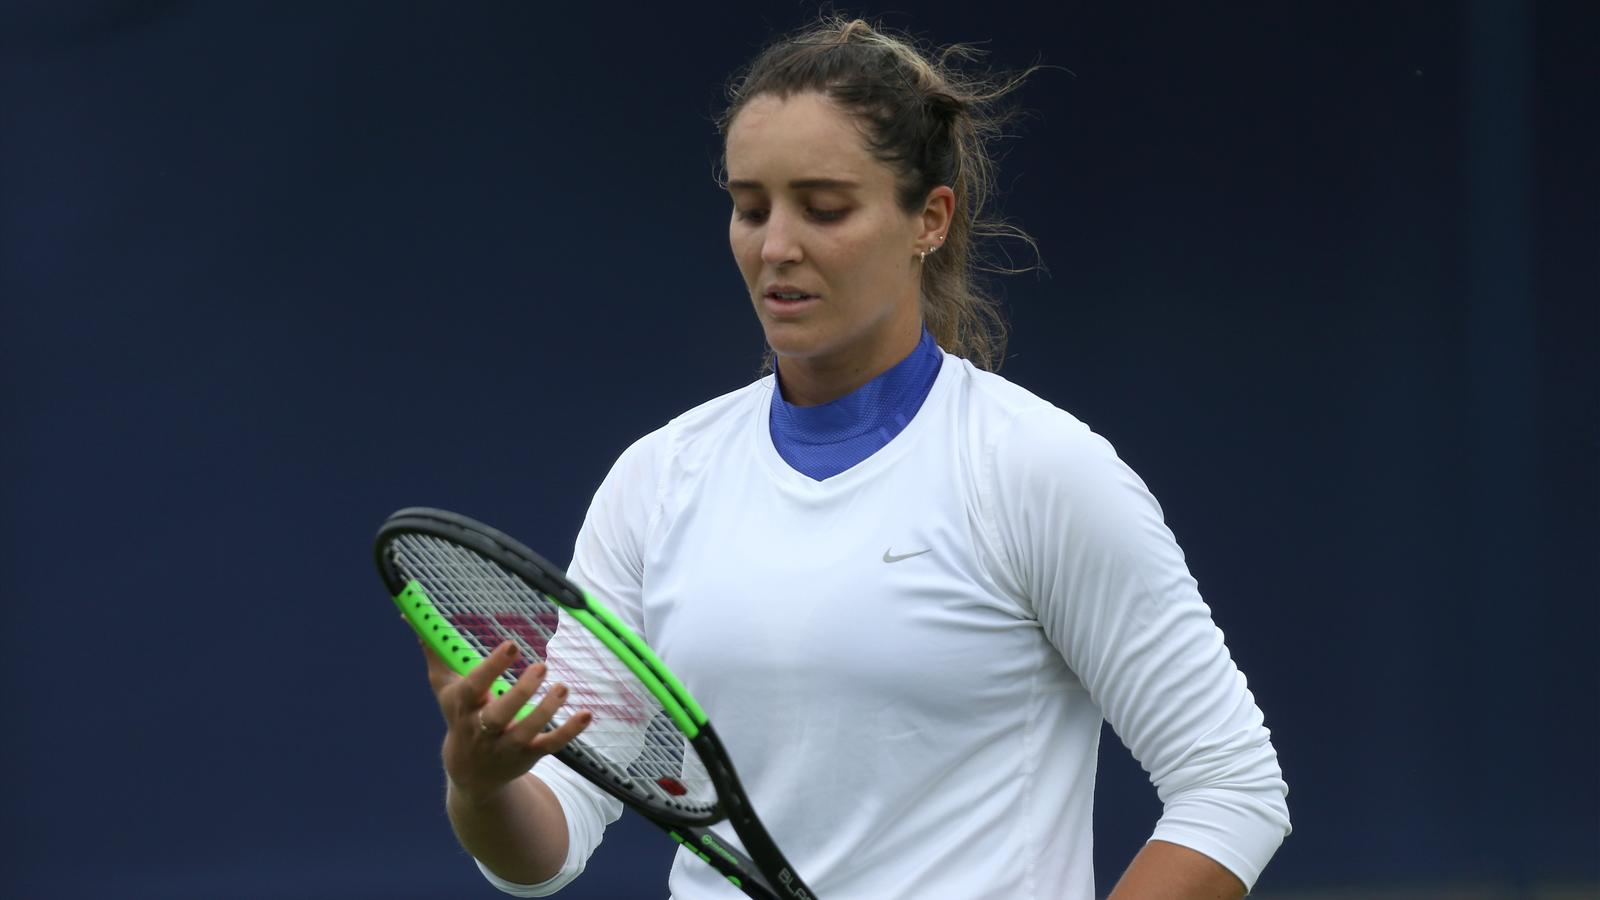 Laura Robson loses in first round of US Open qualifiers as Katie Boulter and Naomi Broady progress